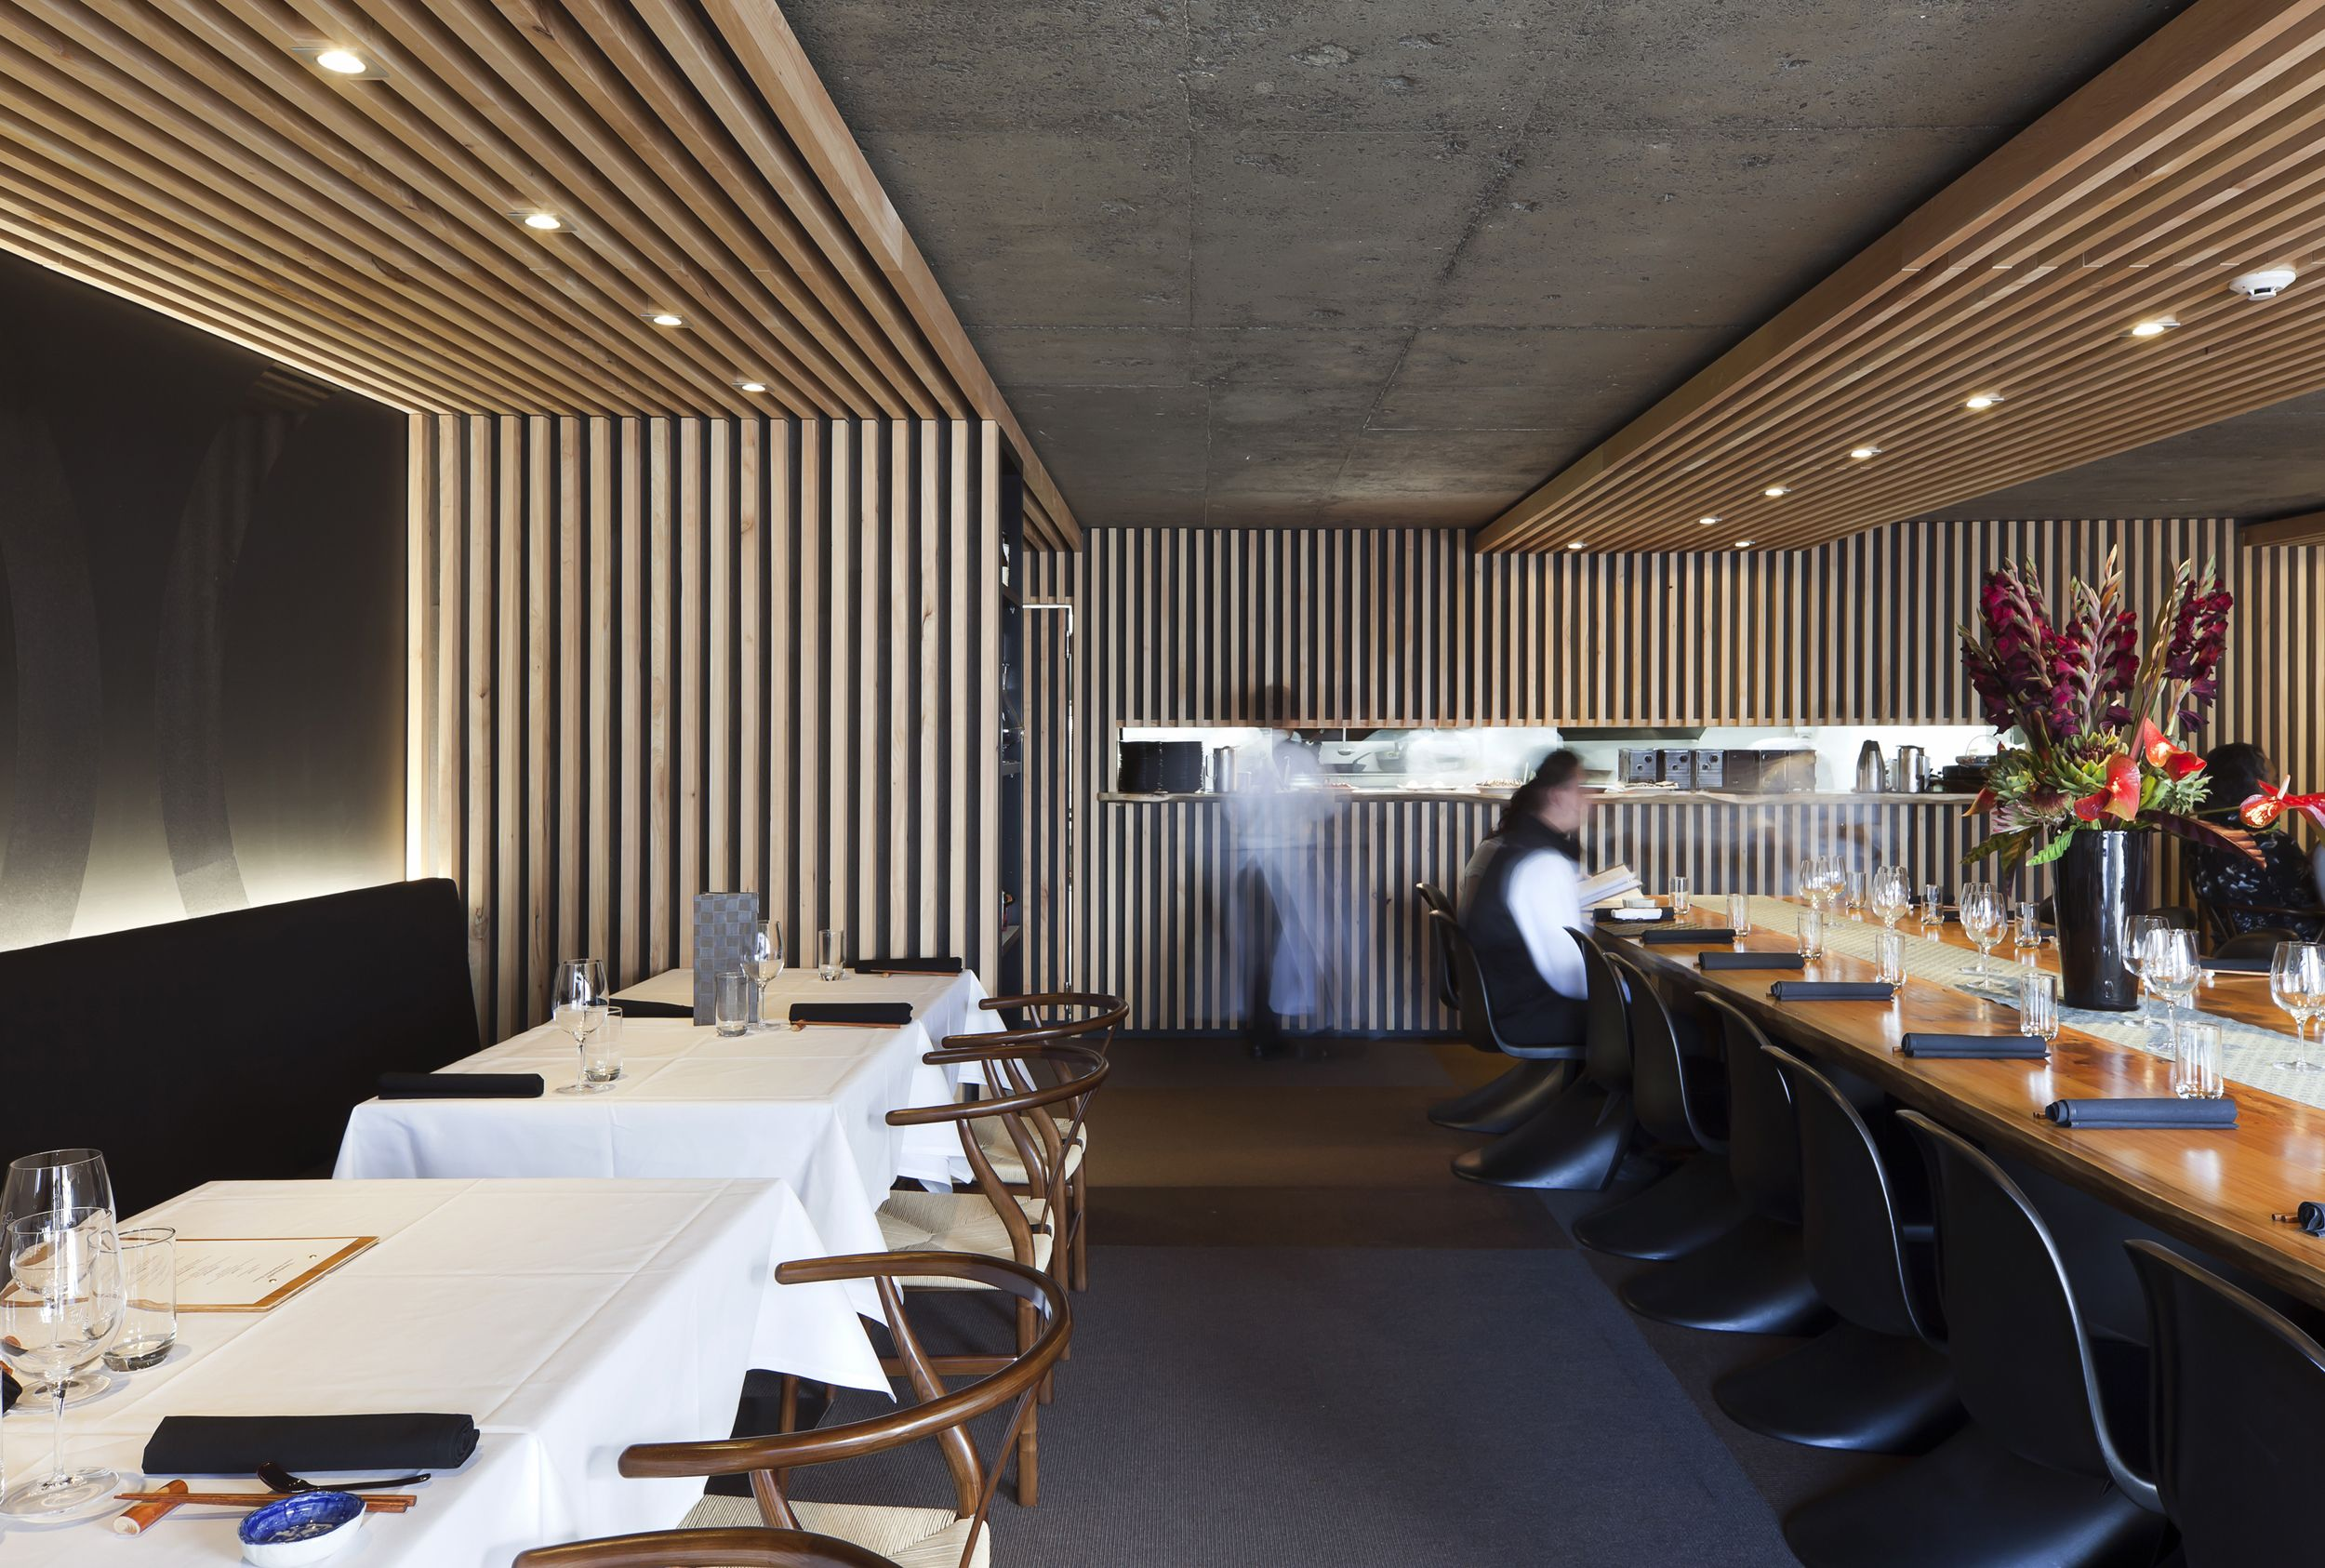 The Use Of Slatted Timber Structures Within This